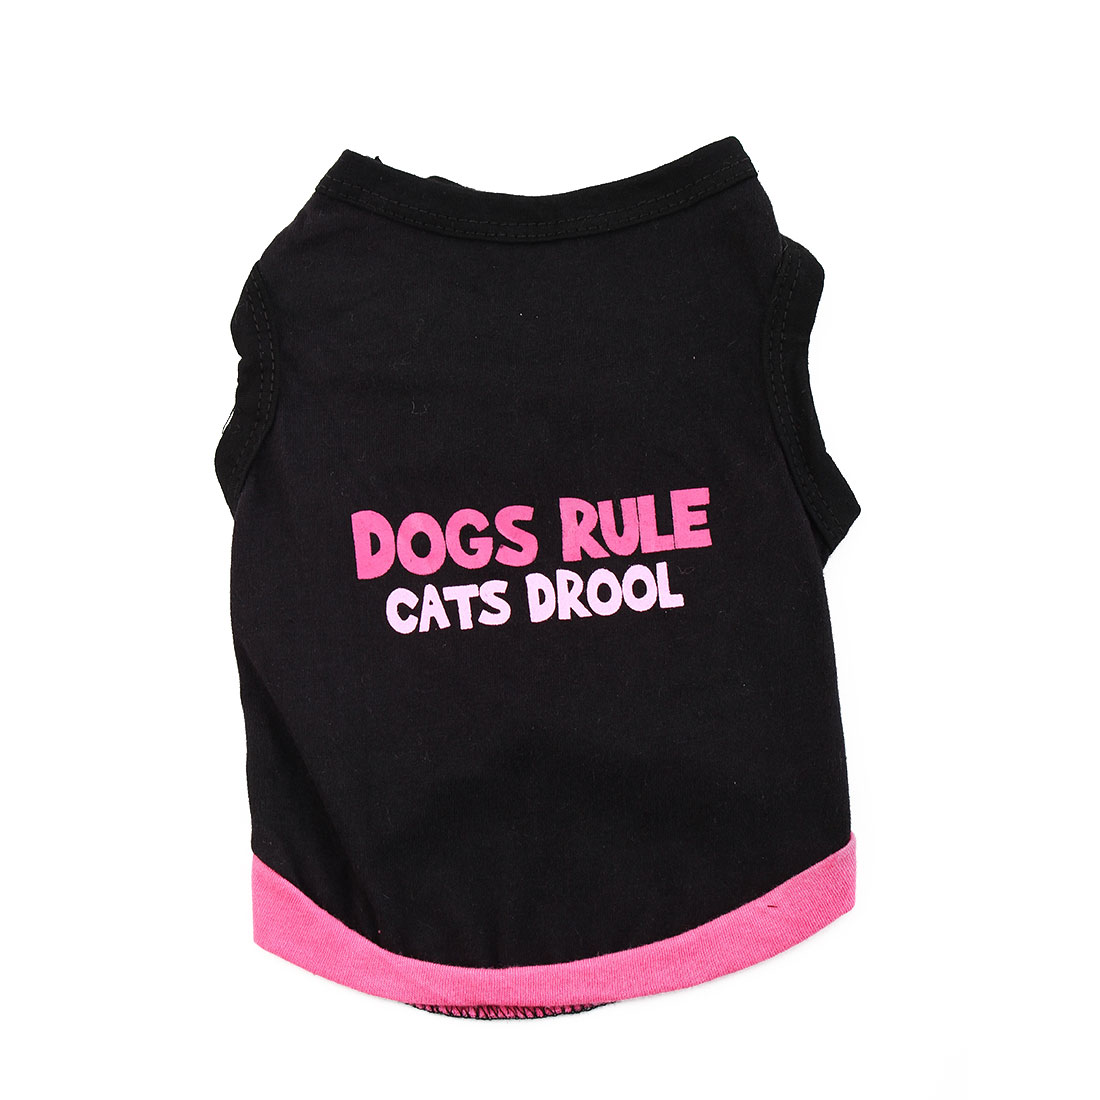 Summer Coat Puppy Costume Pet Clothes Clothing Small Dog Cat Vest T-shirt Tee Black Size S